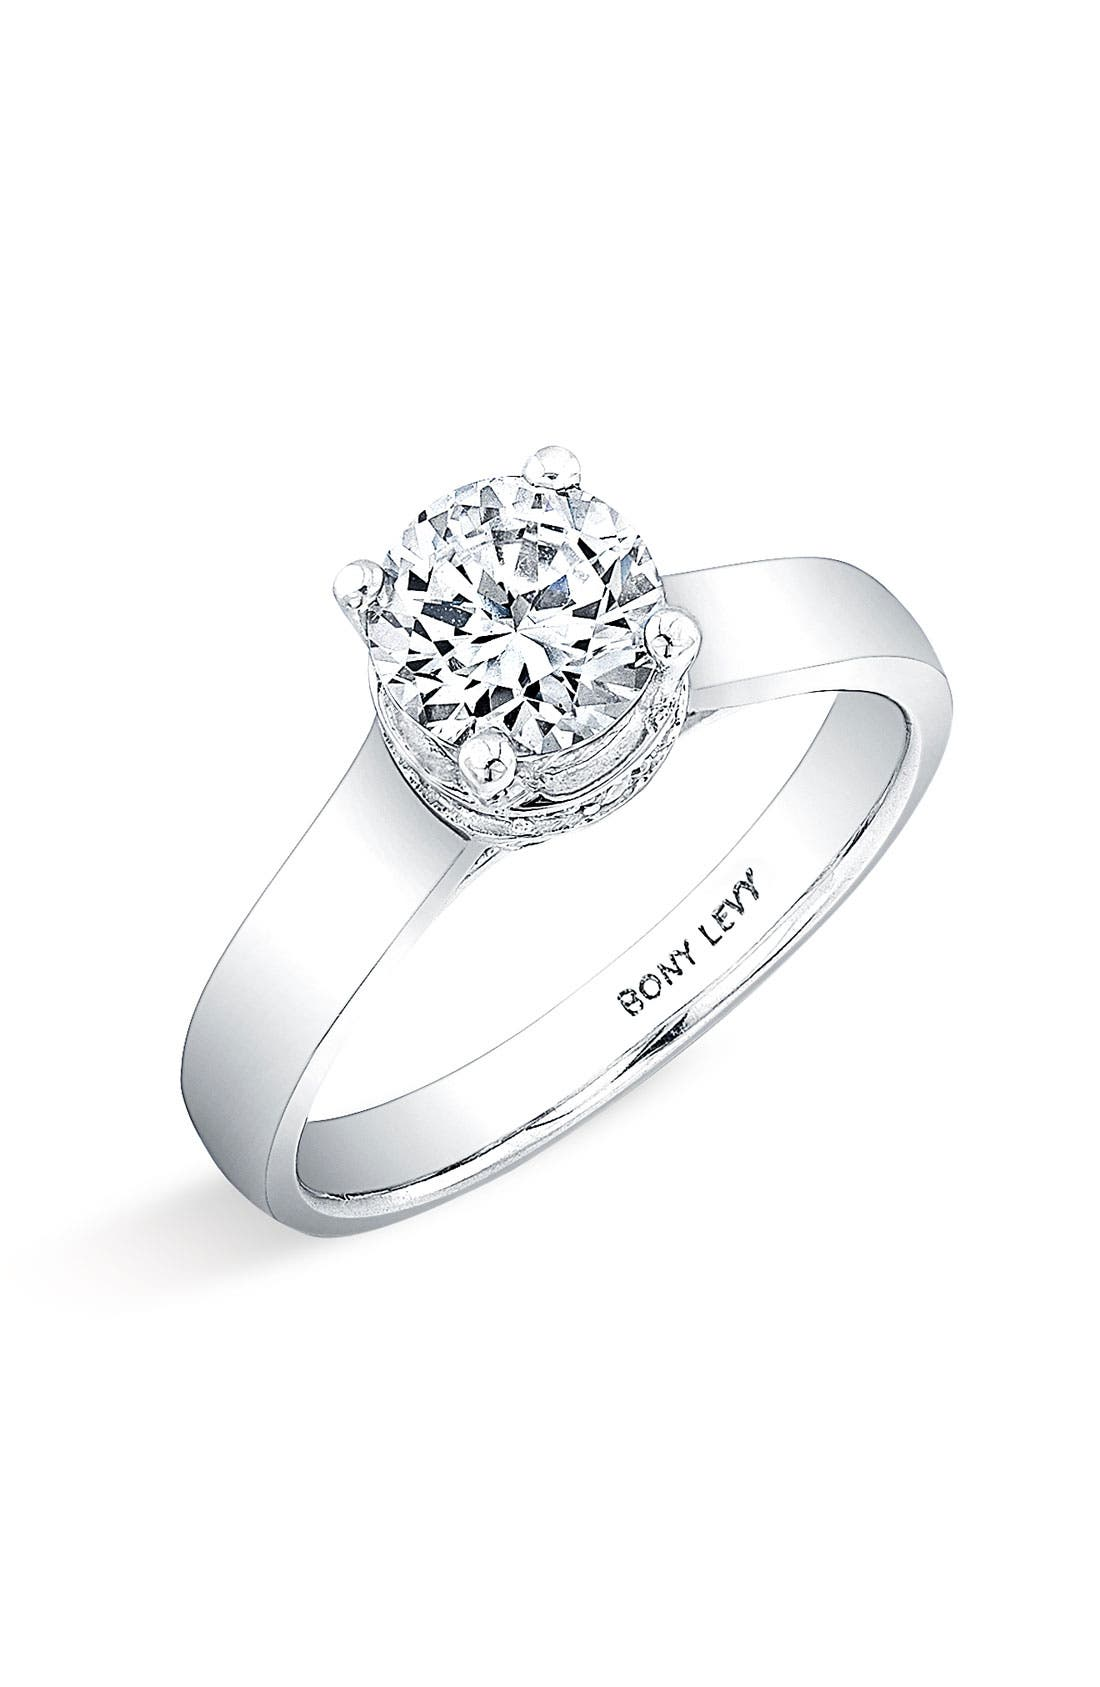 Alternate Image 1 Selected - Bony Levy Diamond Pavé Framed Basket Engagement Ring Setting (Nordstrom Exclusive)